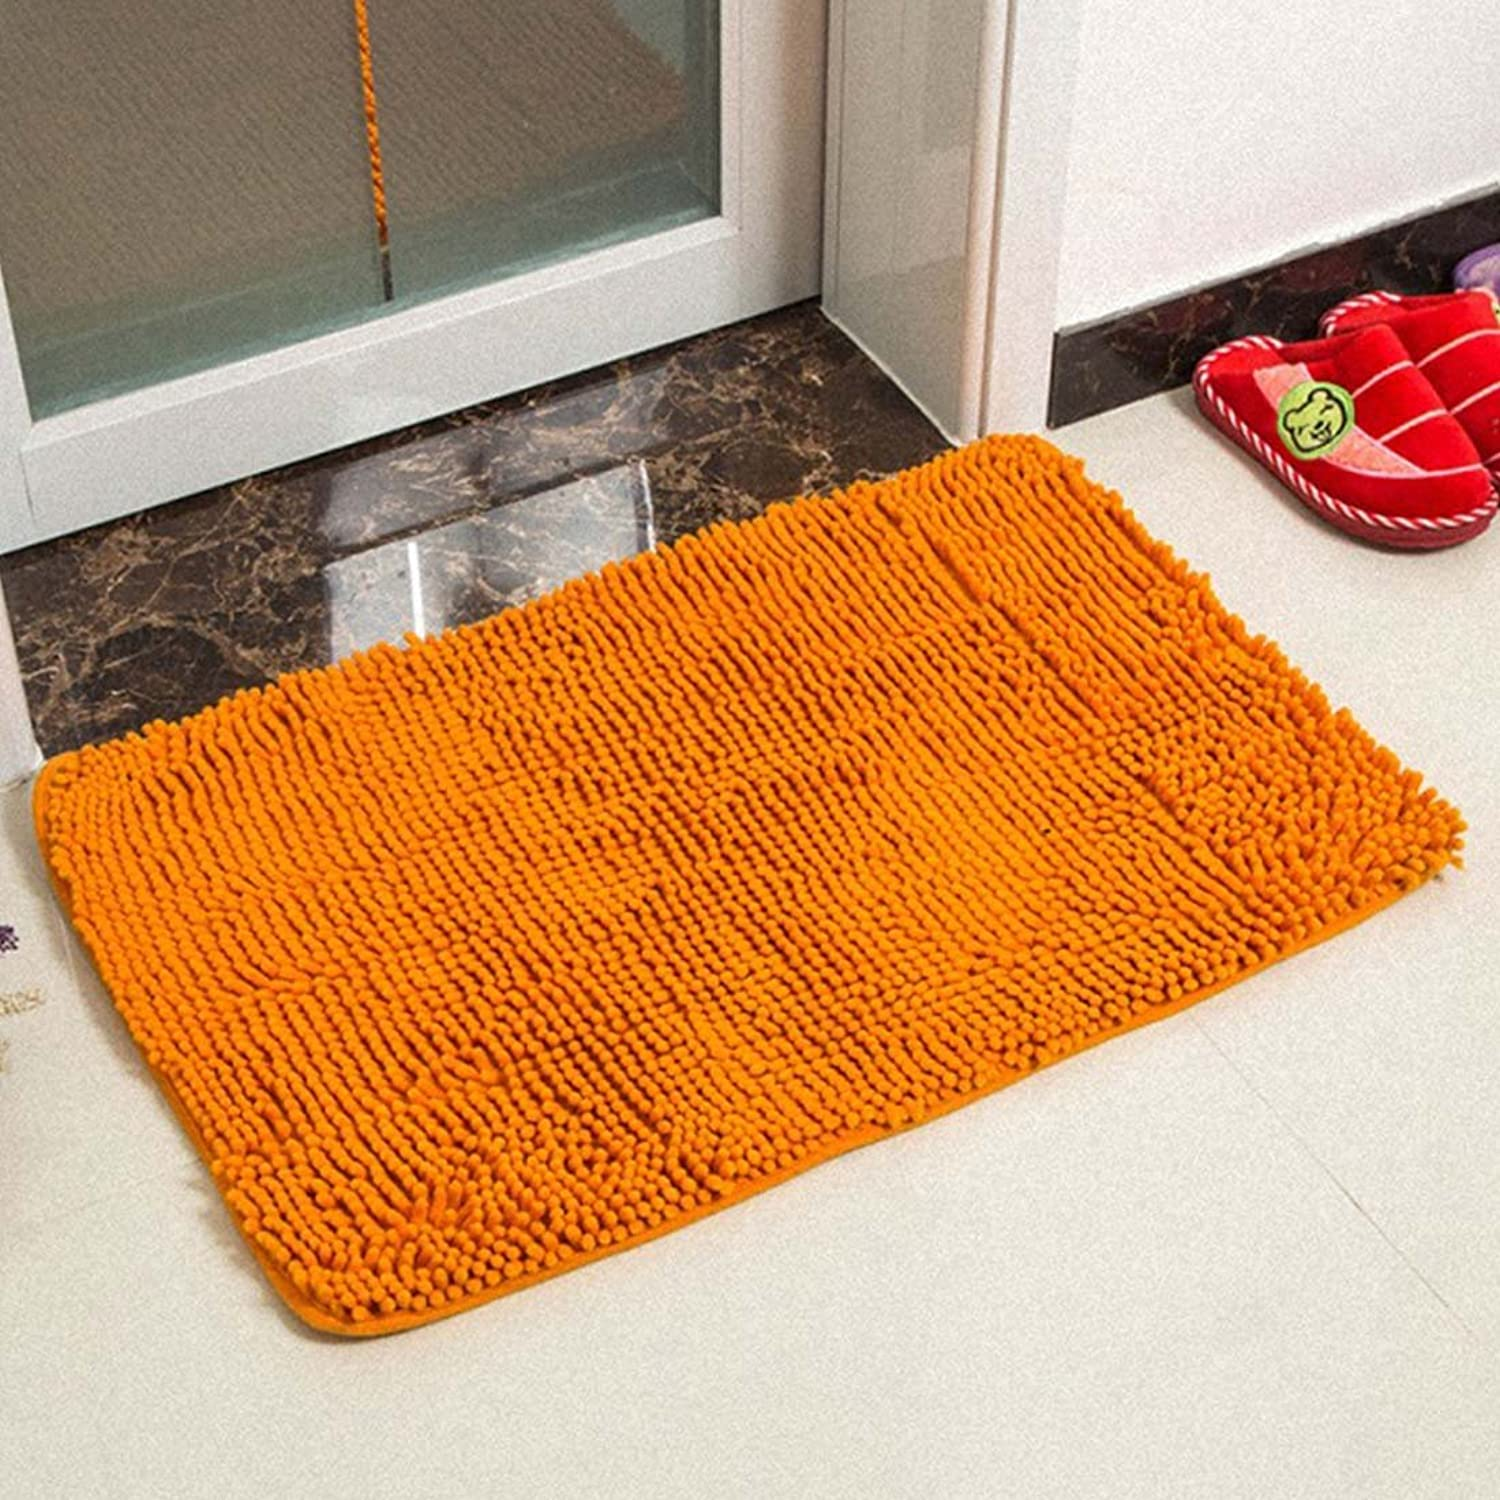 Babe MAPS Indoor Outdoor Doormat Entrance Welcome Mat Absorbent Runner Inserts Non Slip Entry Rug Funny Chenille Mat Saffron Yellow Home Decor for Inside shoes Scraper Floor Carpet 31 x62